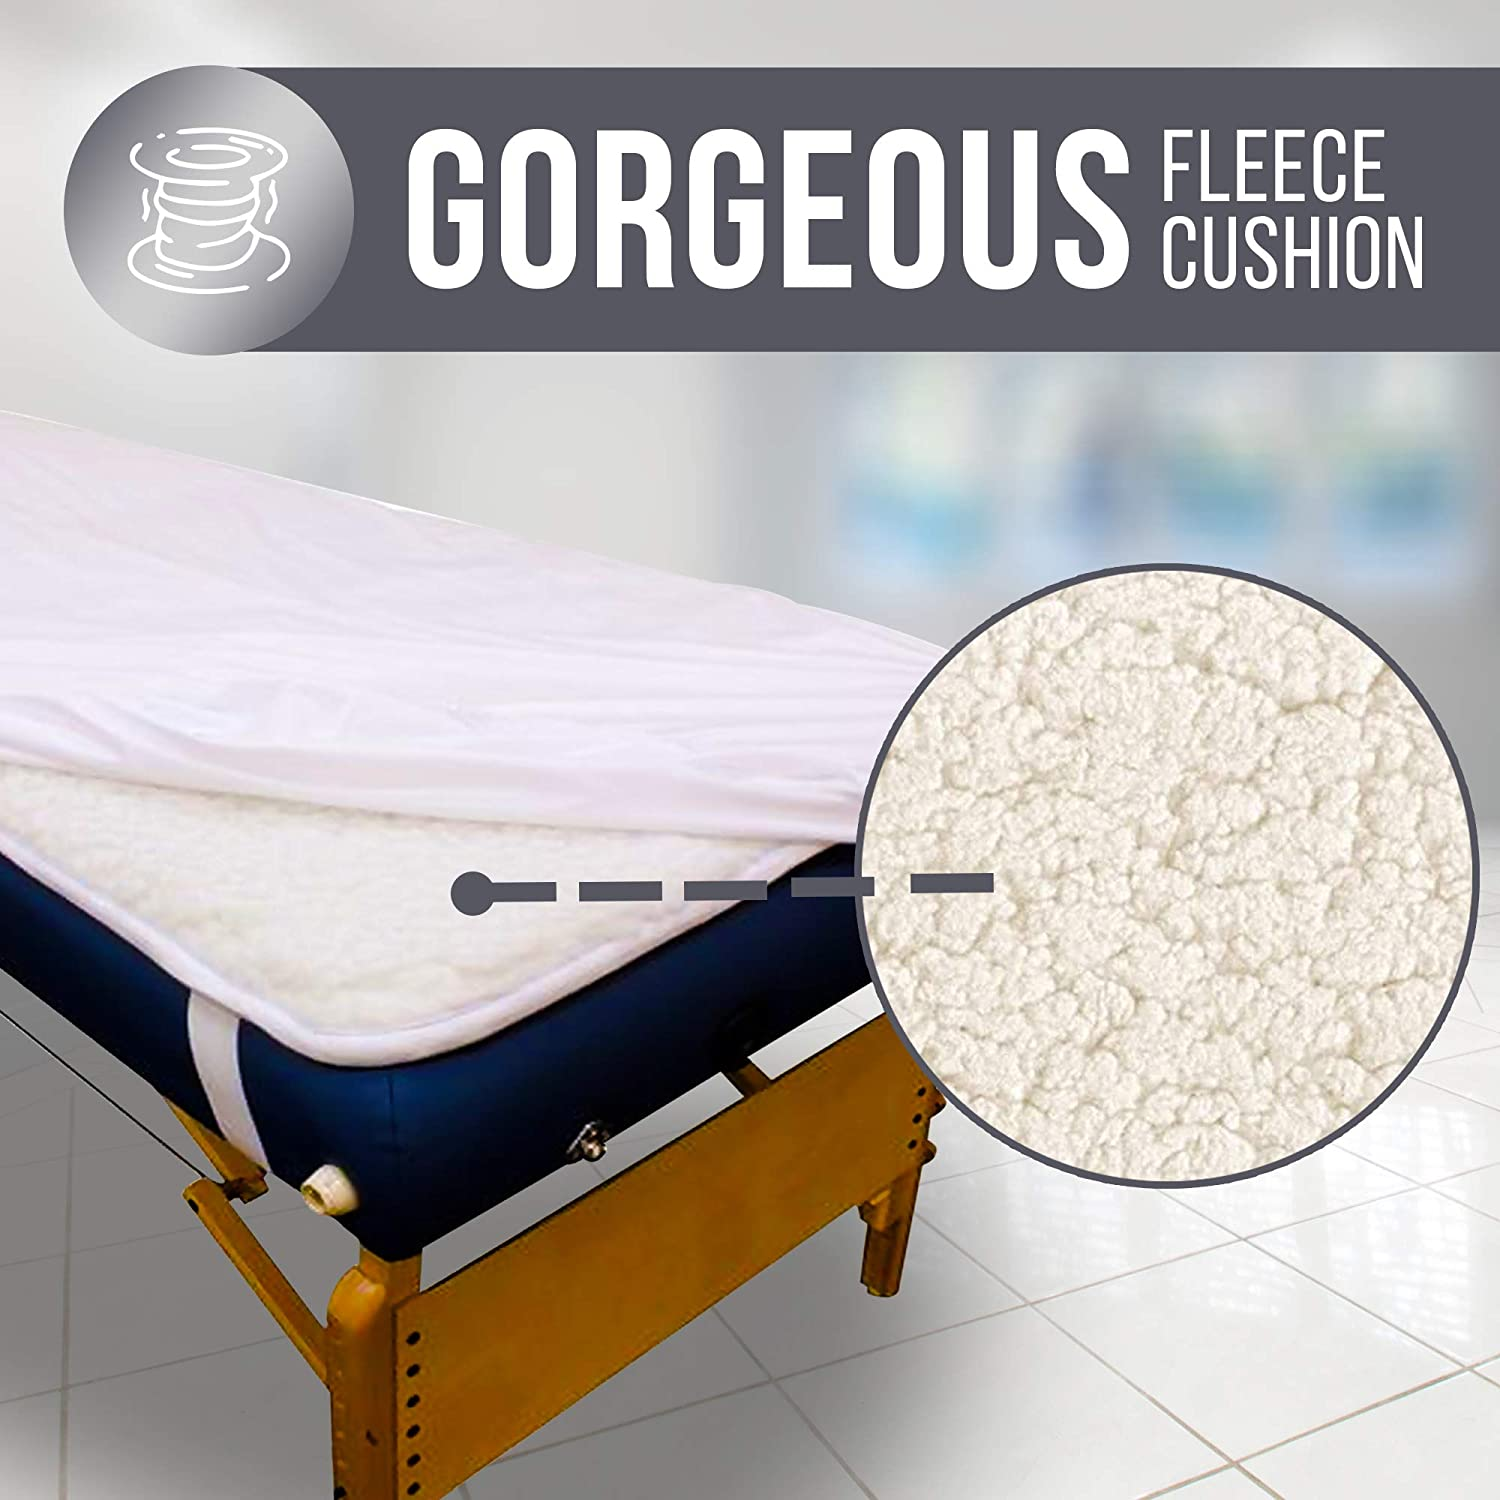 Massage Table Warmer 30 x 73 inches with 3 Heat Settings - Massage Table Heating Pad with 13 Ft Cord - Thick & Soft Sherpa Fleece Massage Bed Warmer with Overheat Safeguard System, White : Beauty